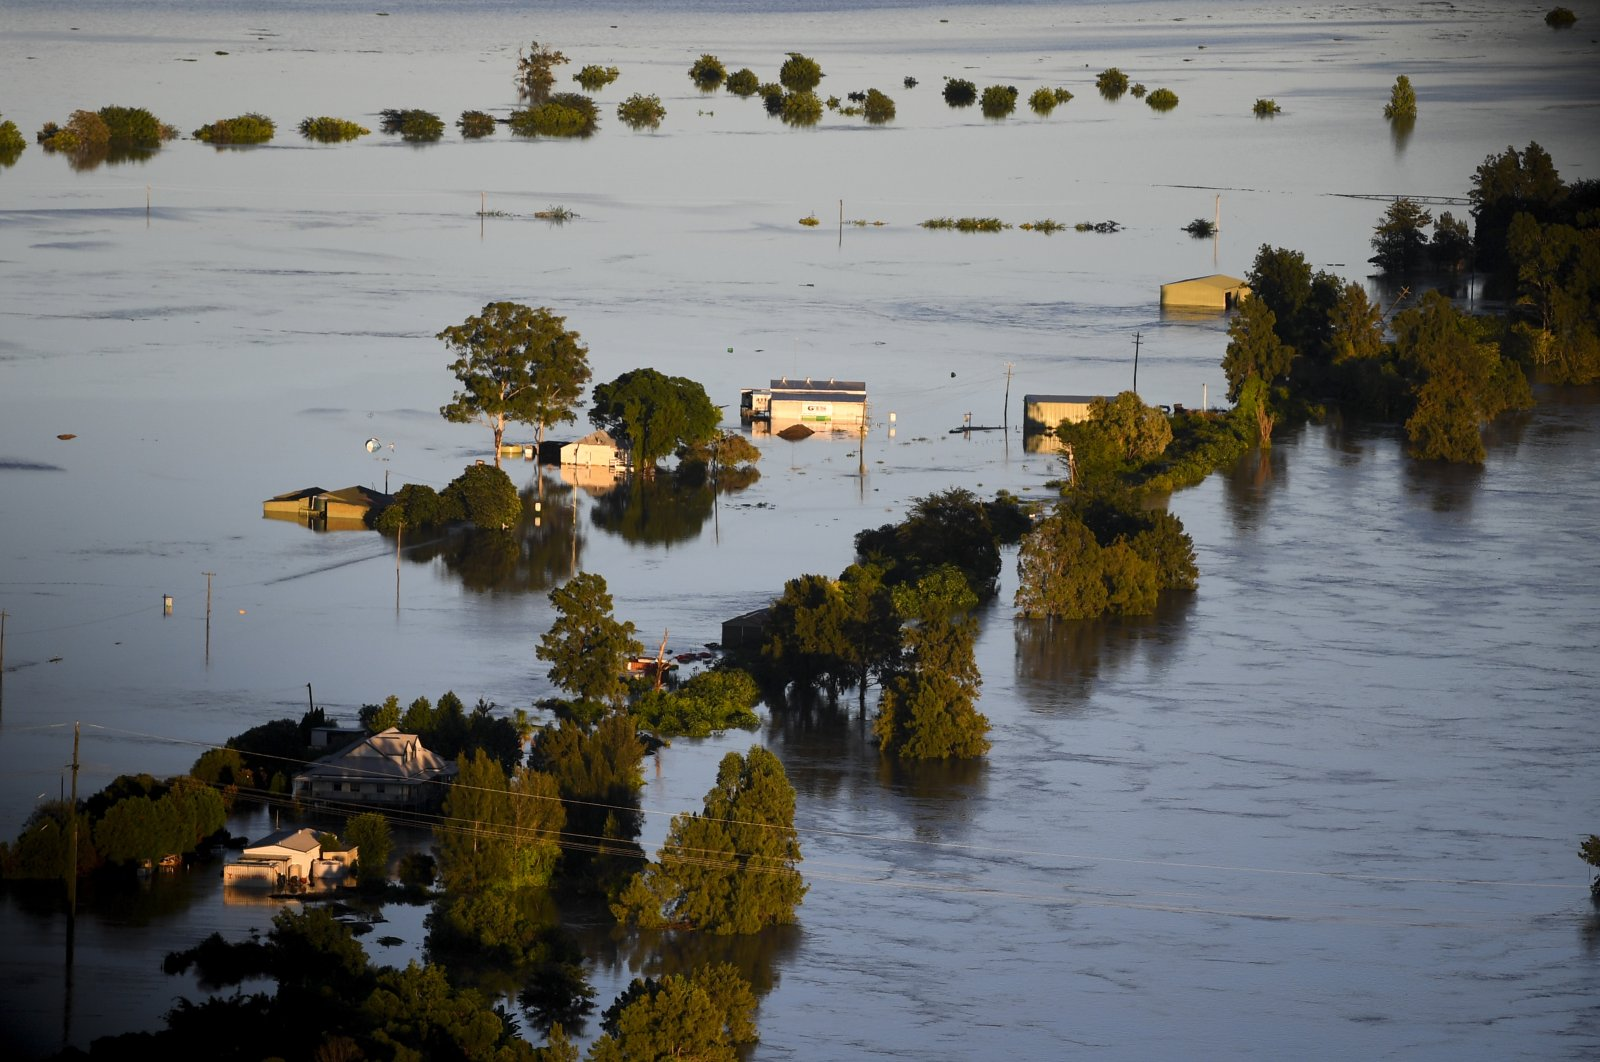 Flood-affected areas are seen from a helicopter in the Windsor and Pitt Town areas along the Hawkesbury River near Sydney, Australia, March 24, 2021. (EPA Photo)